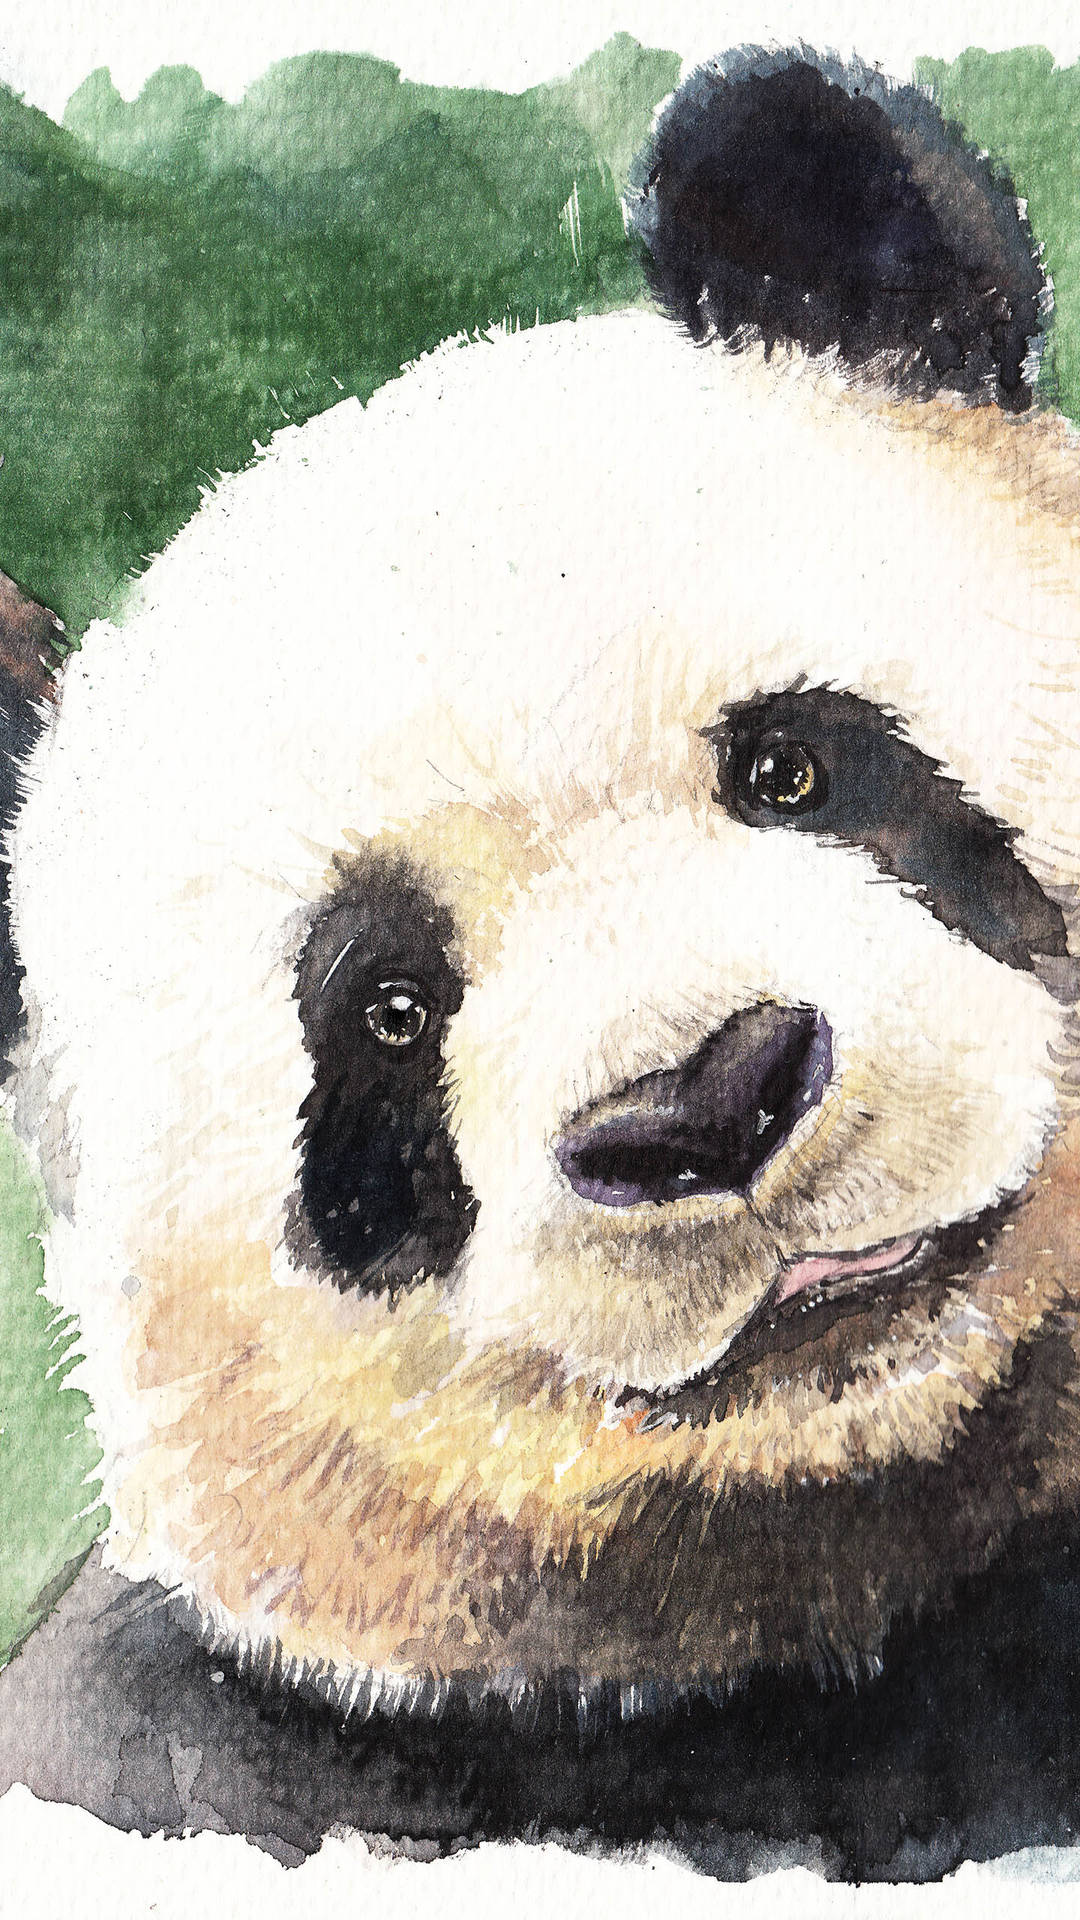 11 Cute Panda Wallpapers for iPhone With 1920x1080 ...